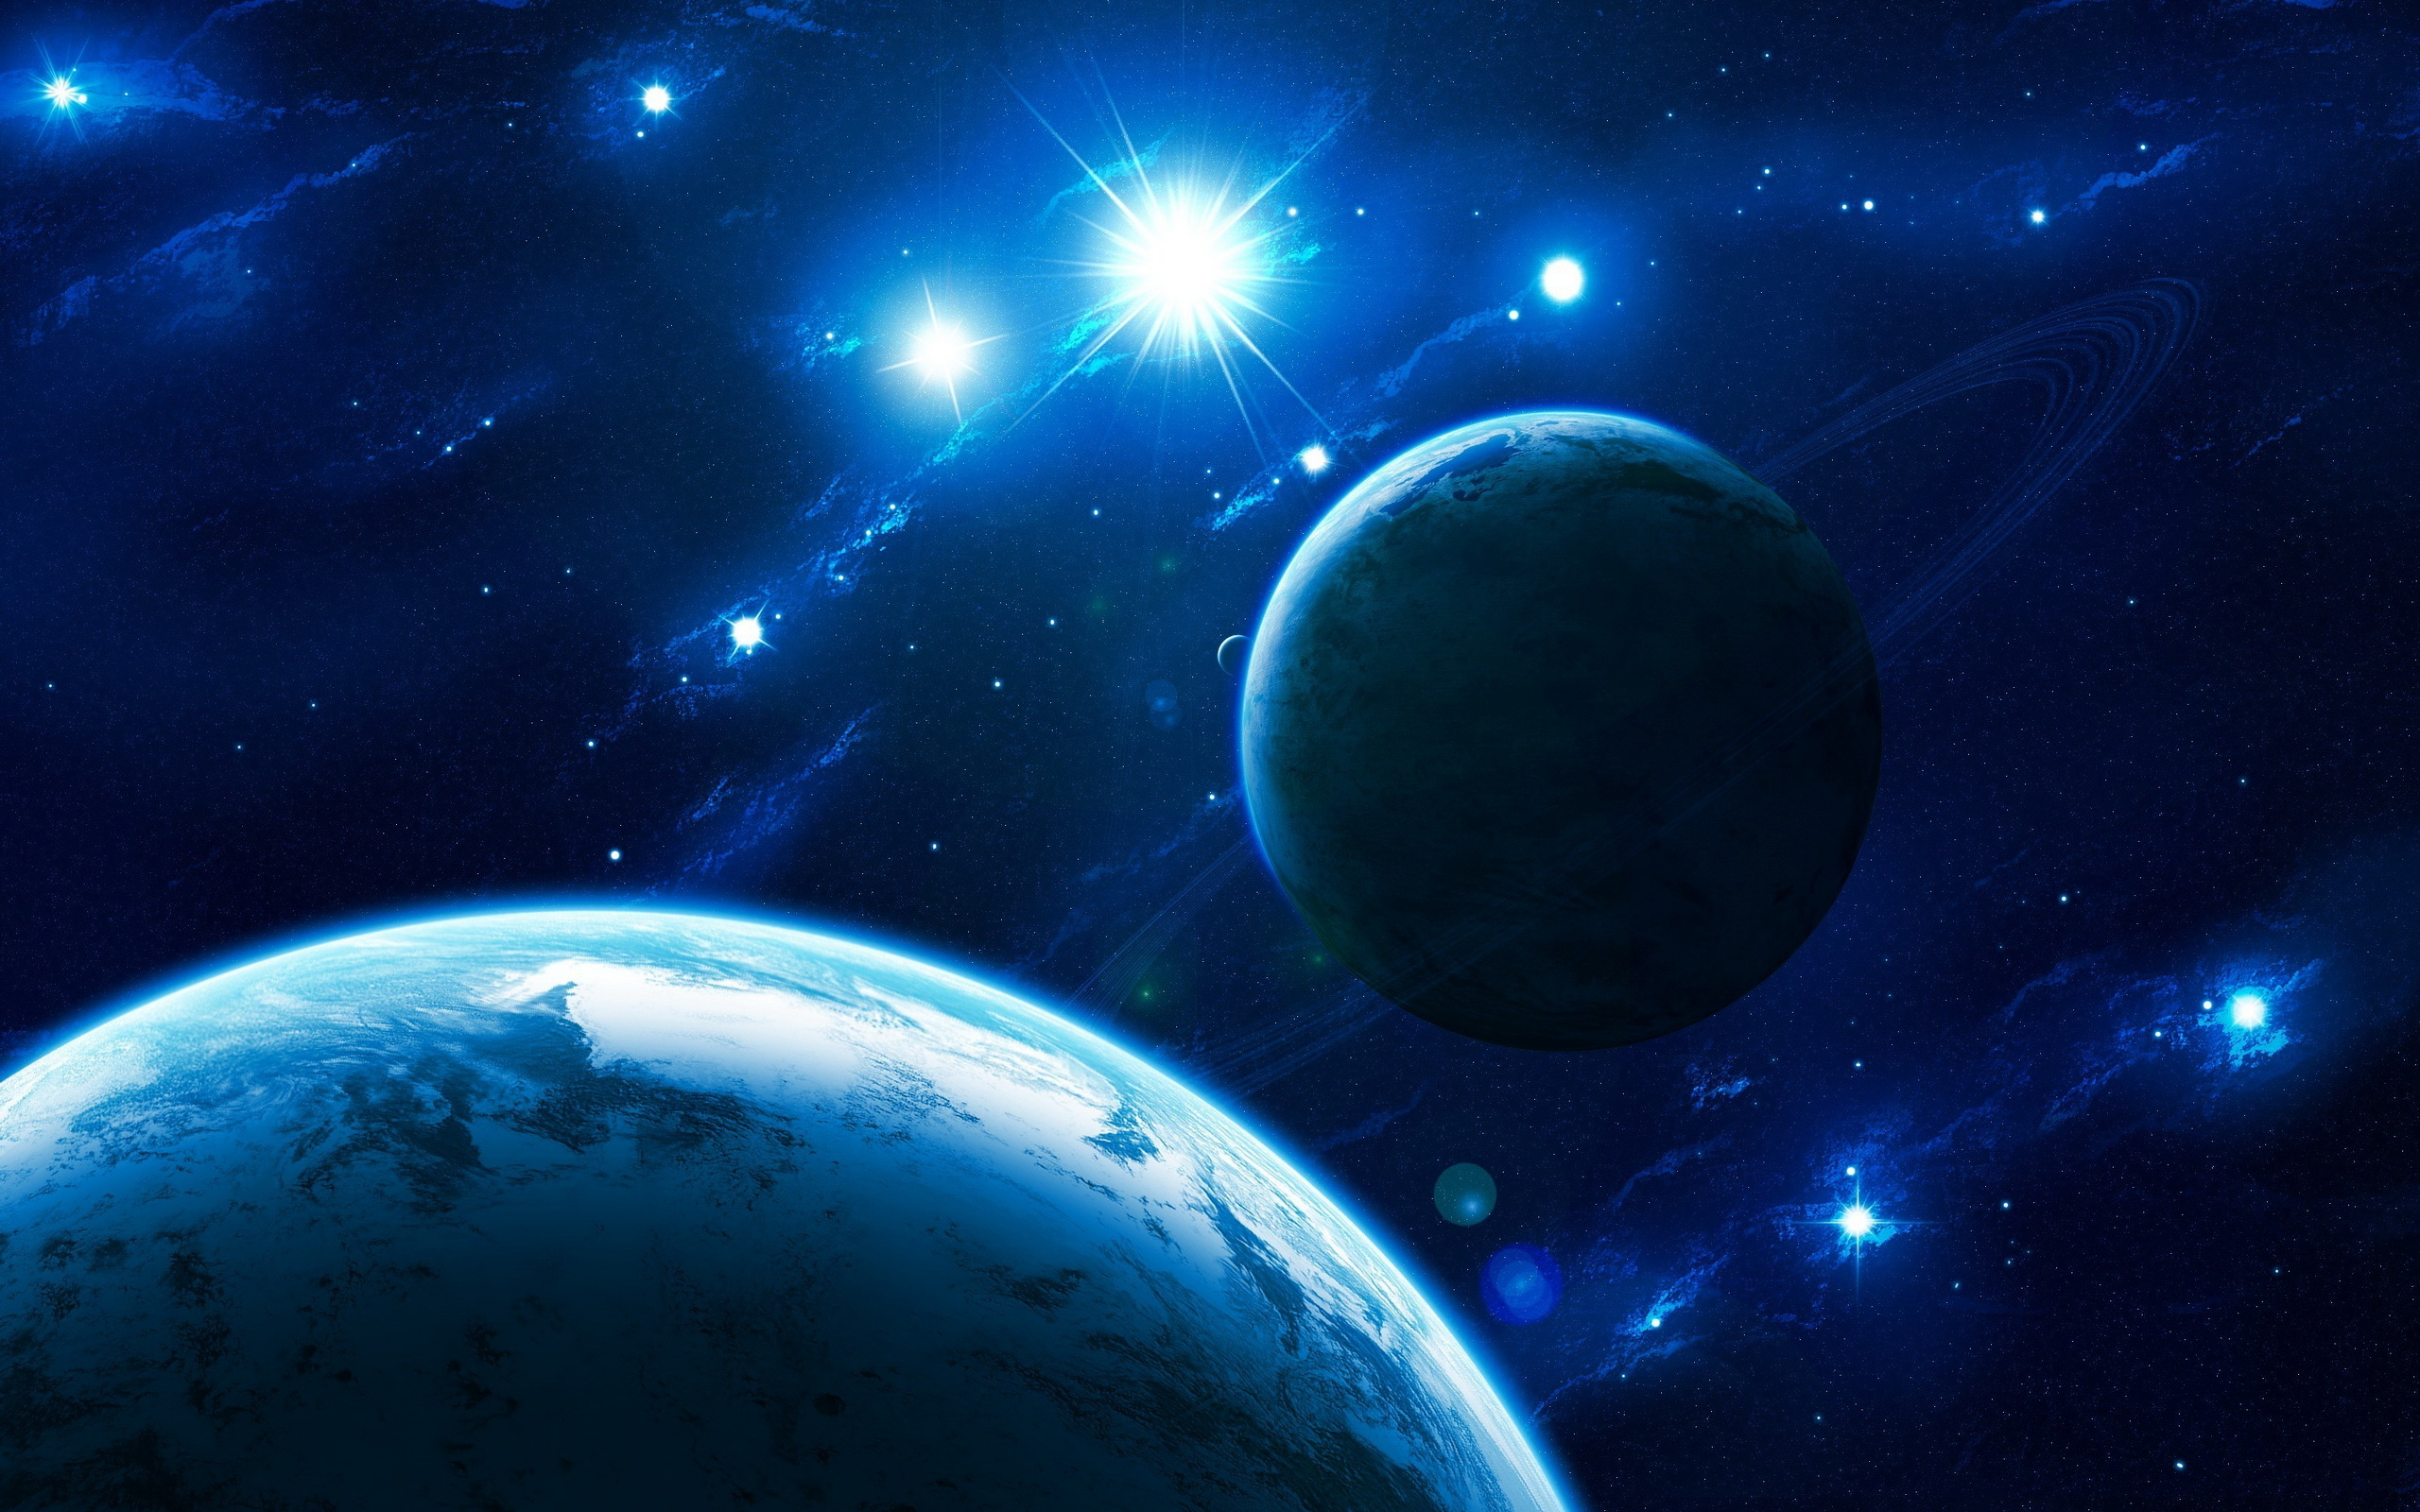 Space star system